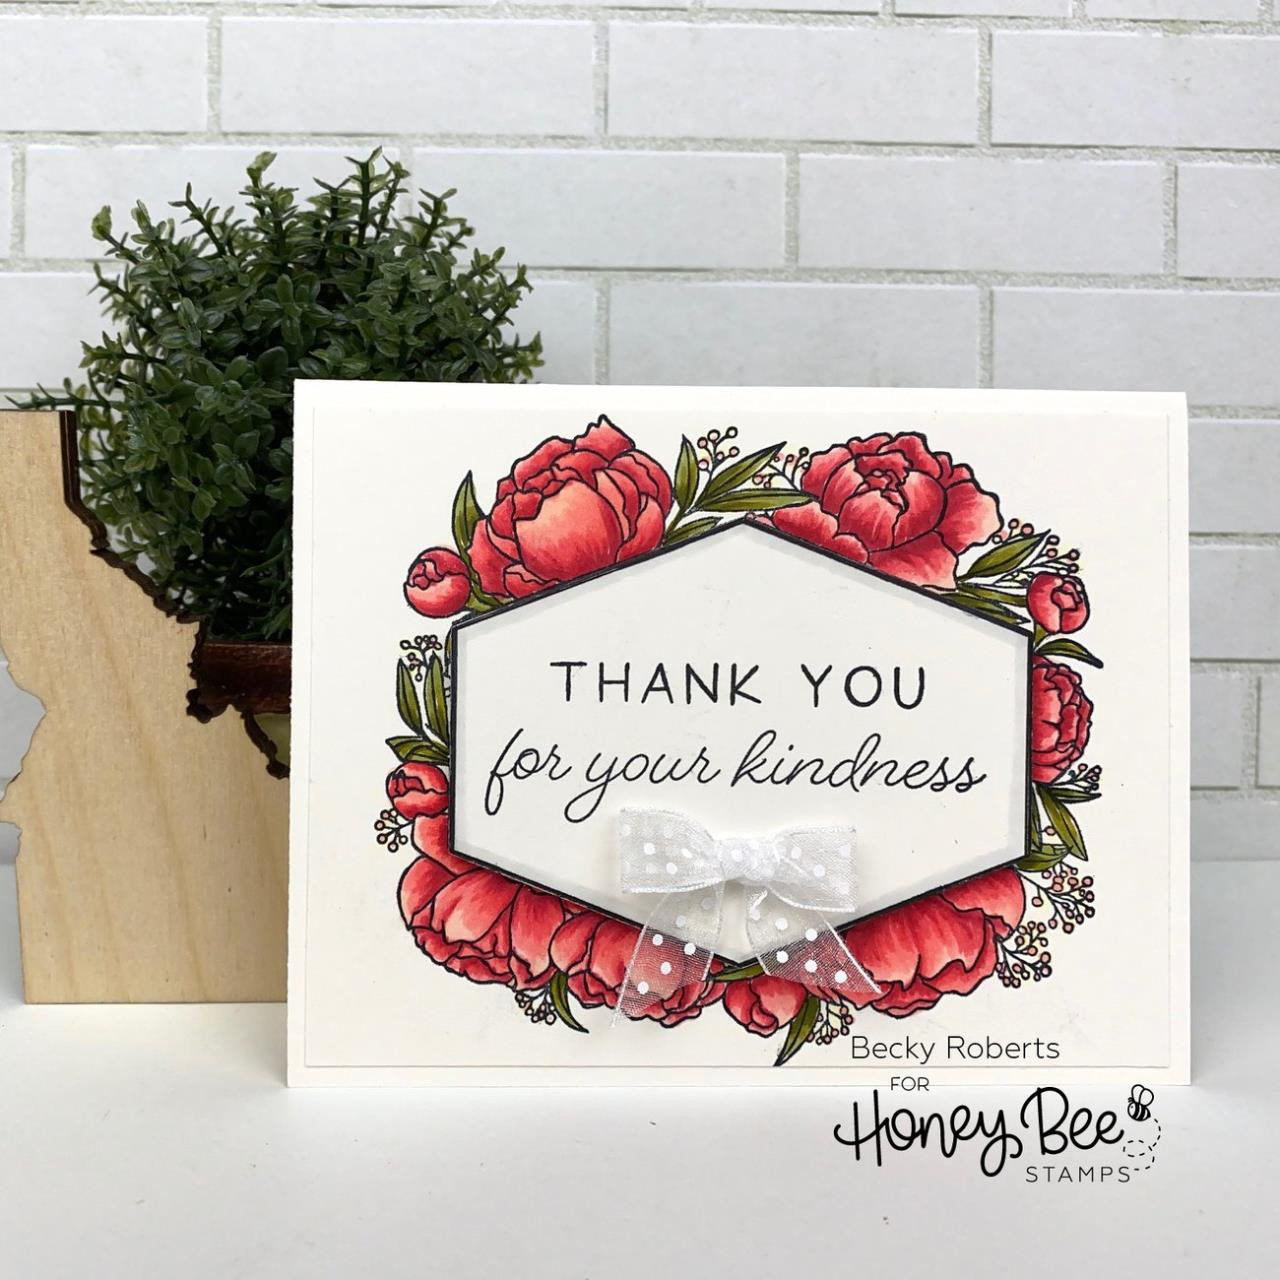 In Full Bloom, Honey Bee Clear Stamps - 652827604062